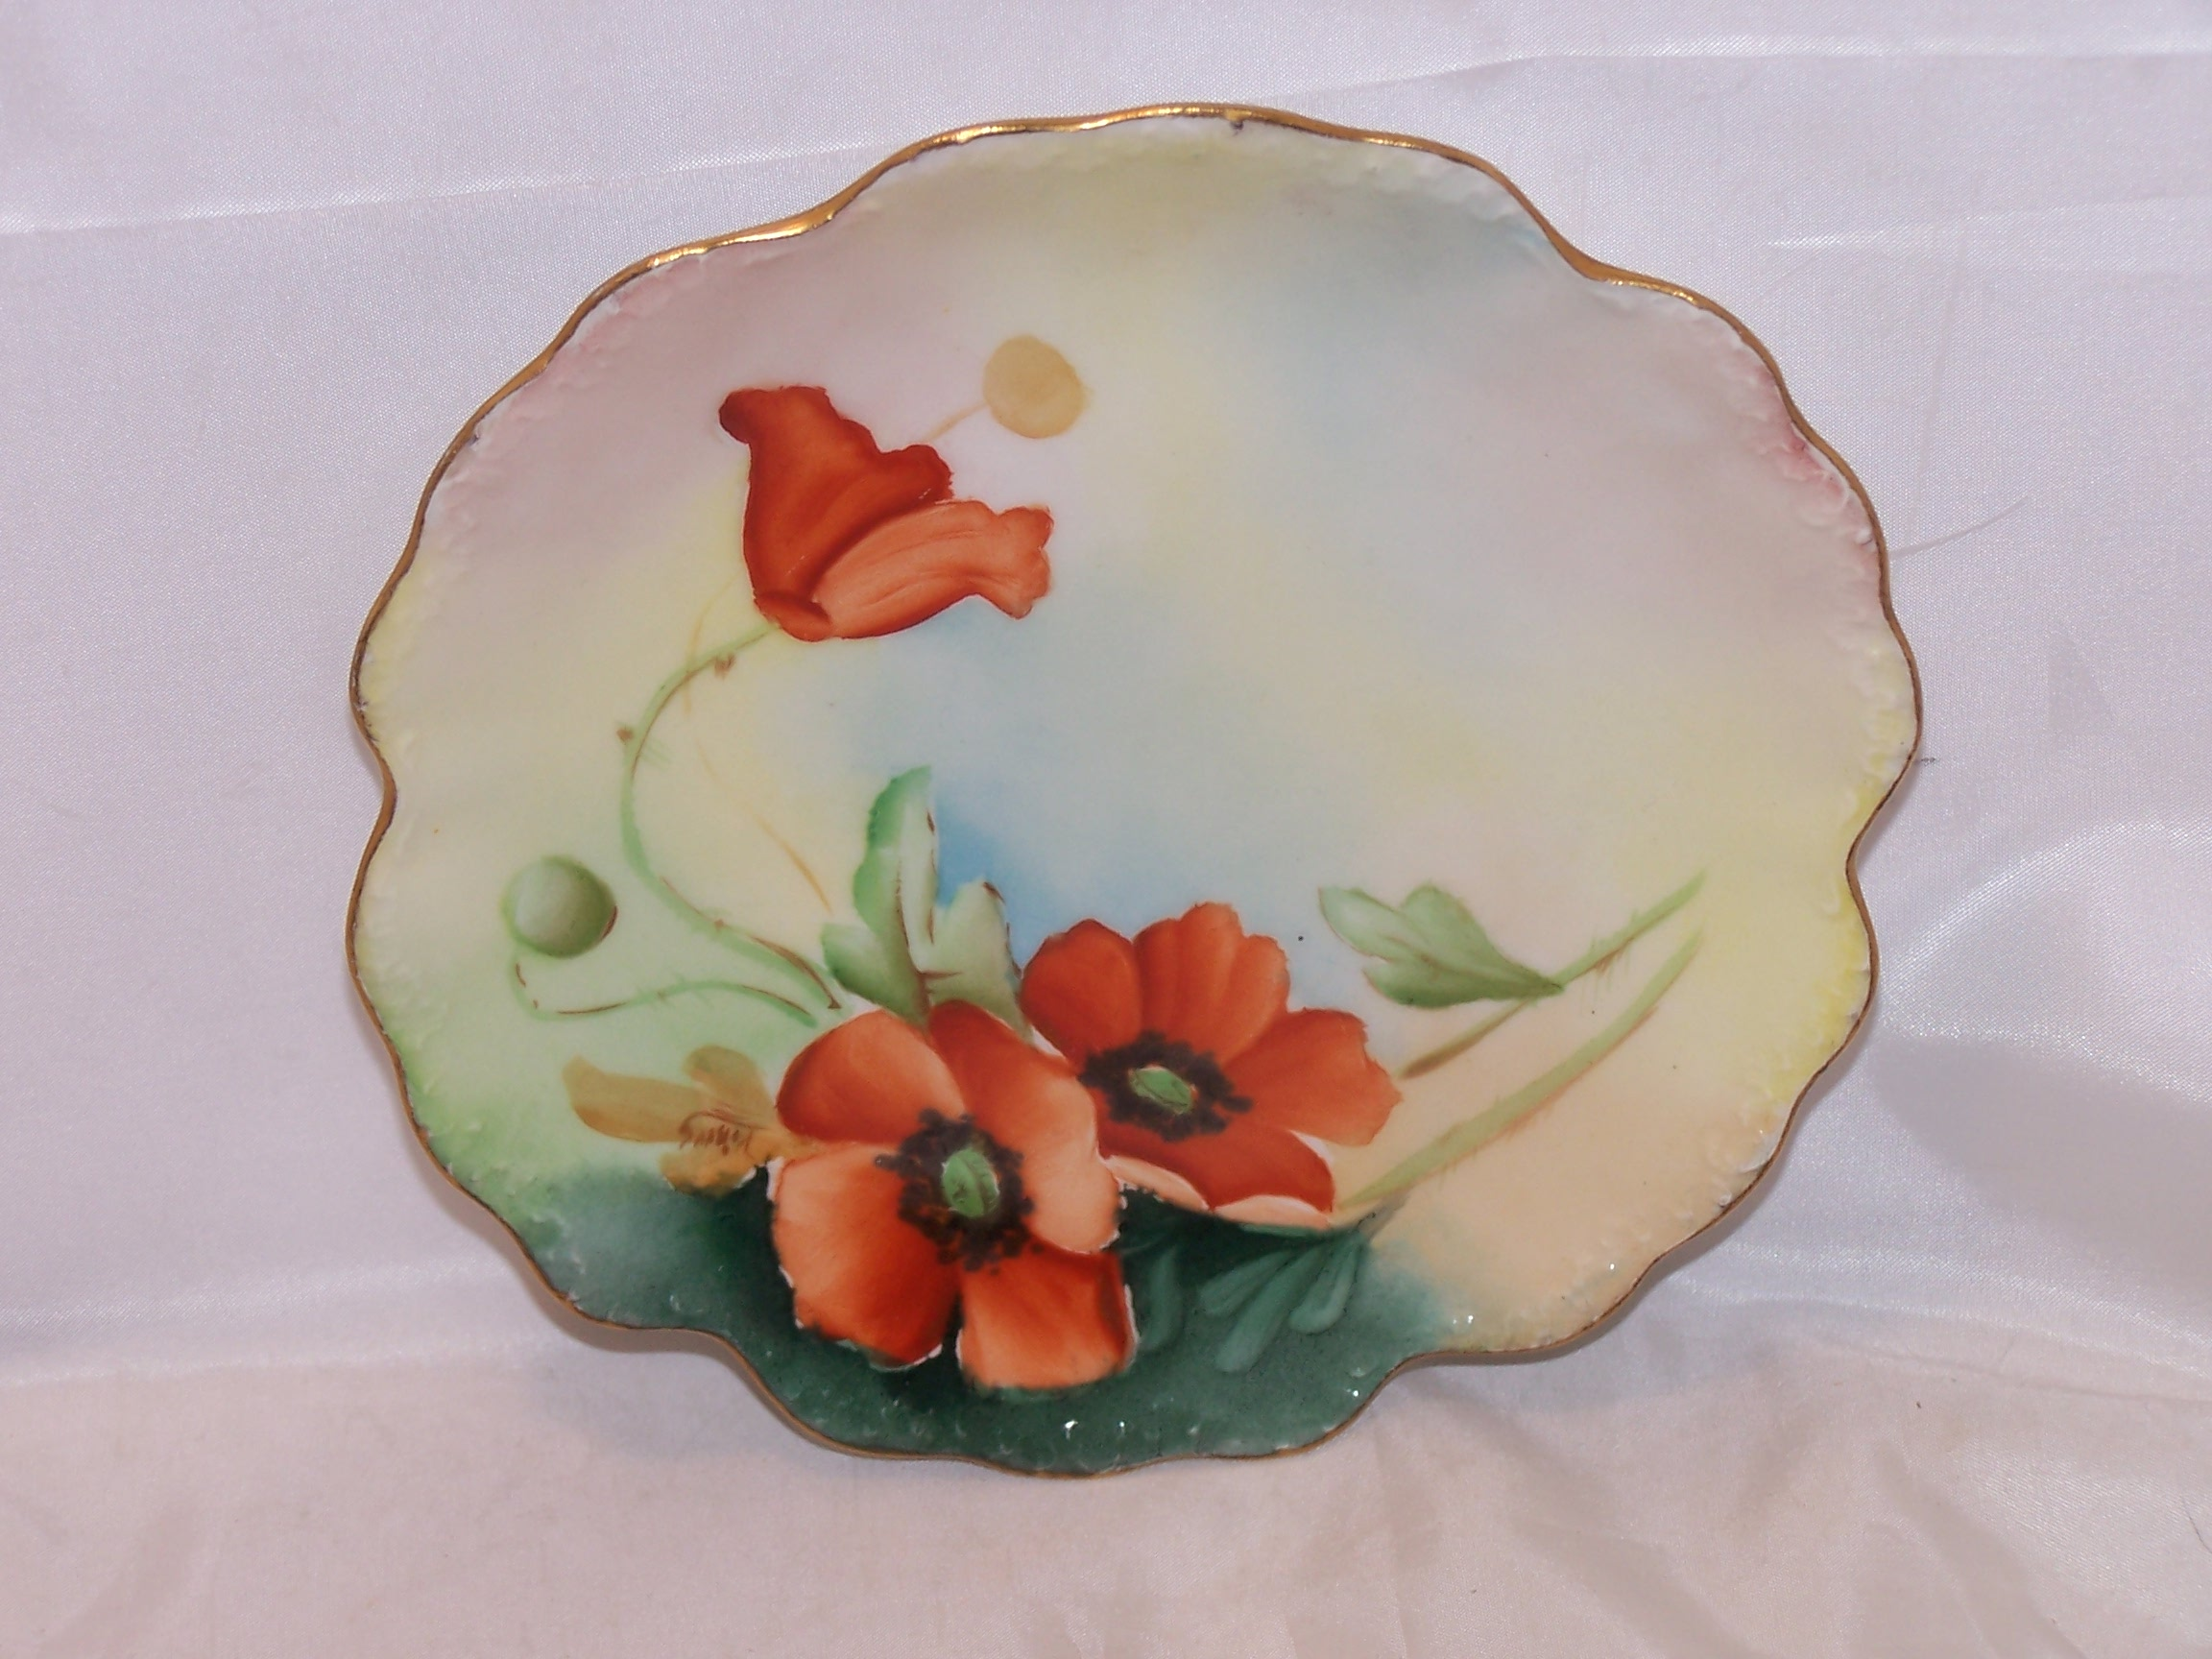 Deep Plate Elite France Poppy Plate, Limoges Porcelain, C 1896 To 1920